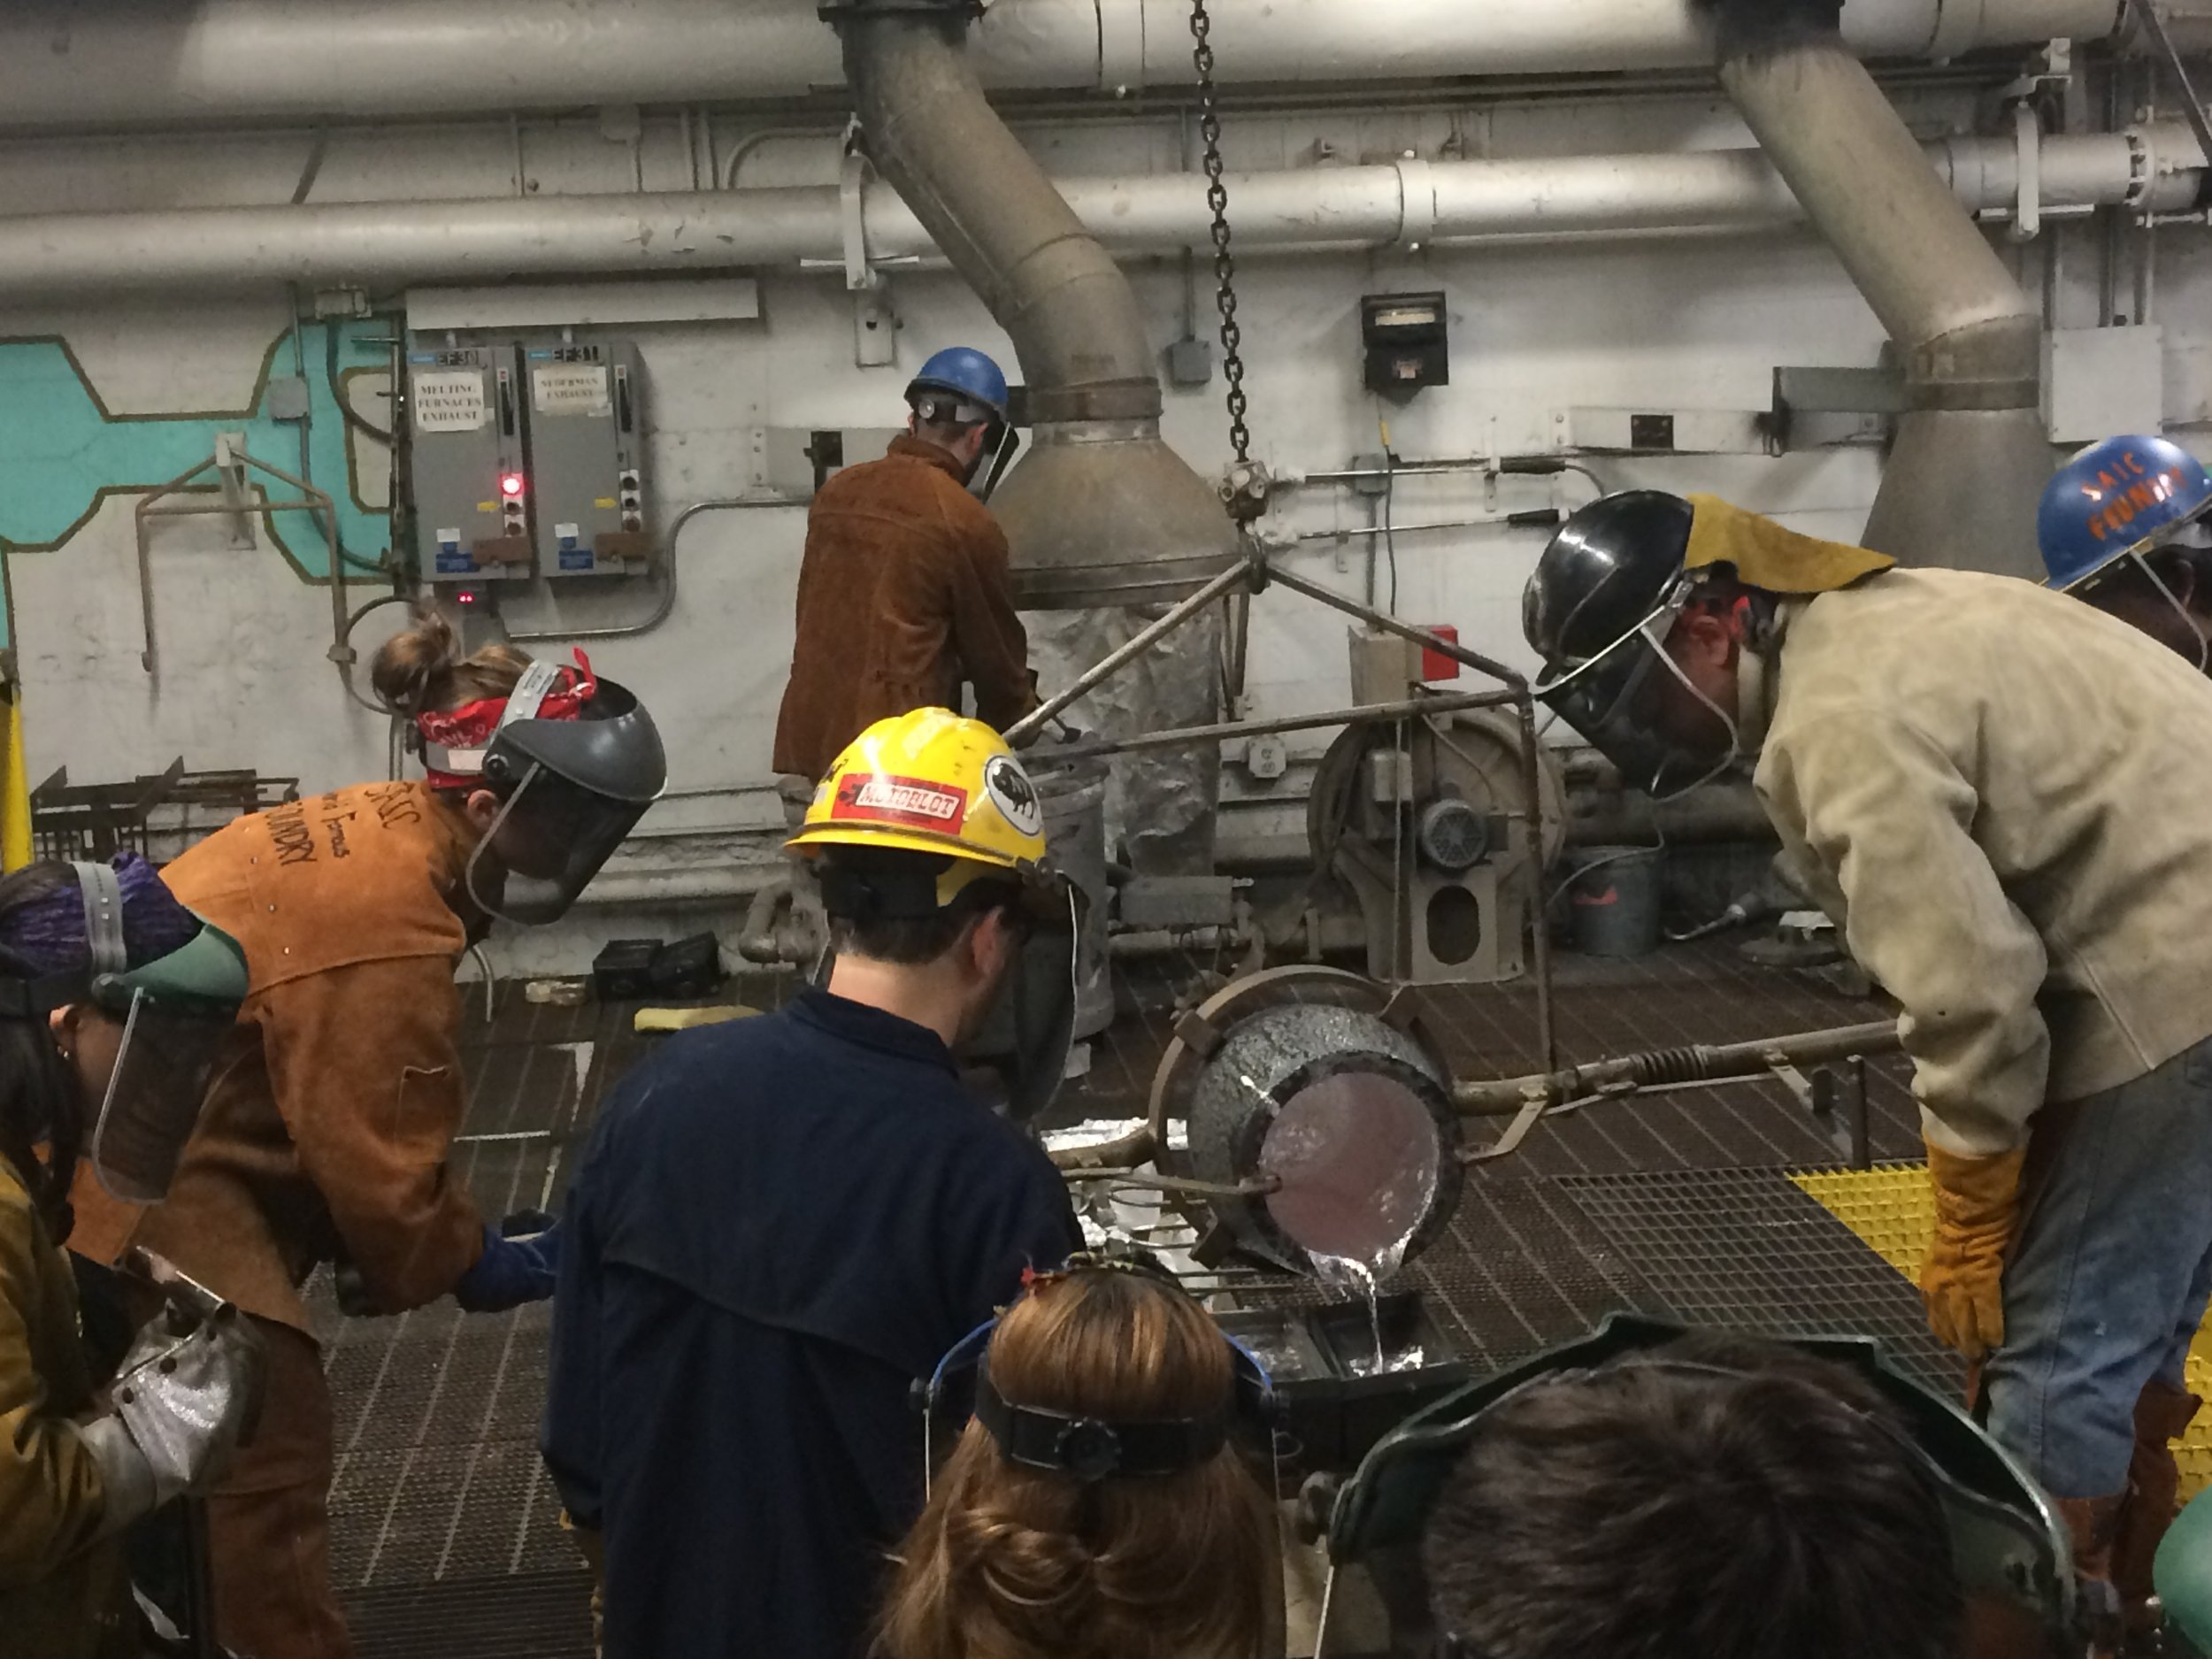 Majenta on the left helping lead an aluminum pour.